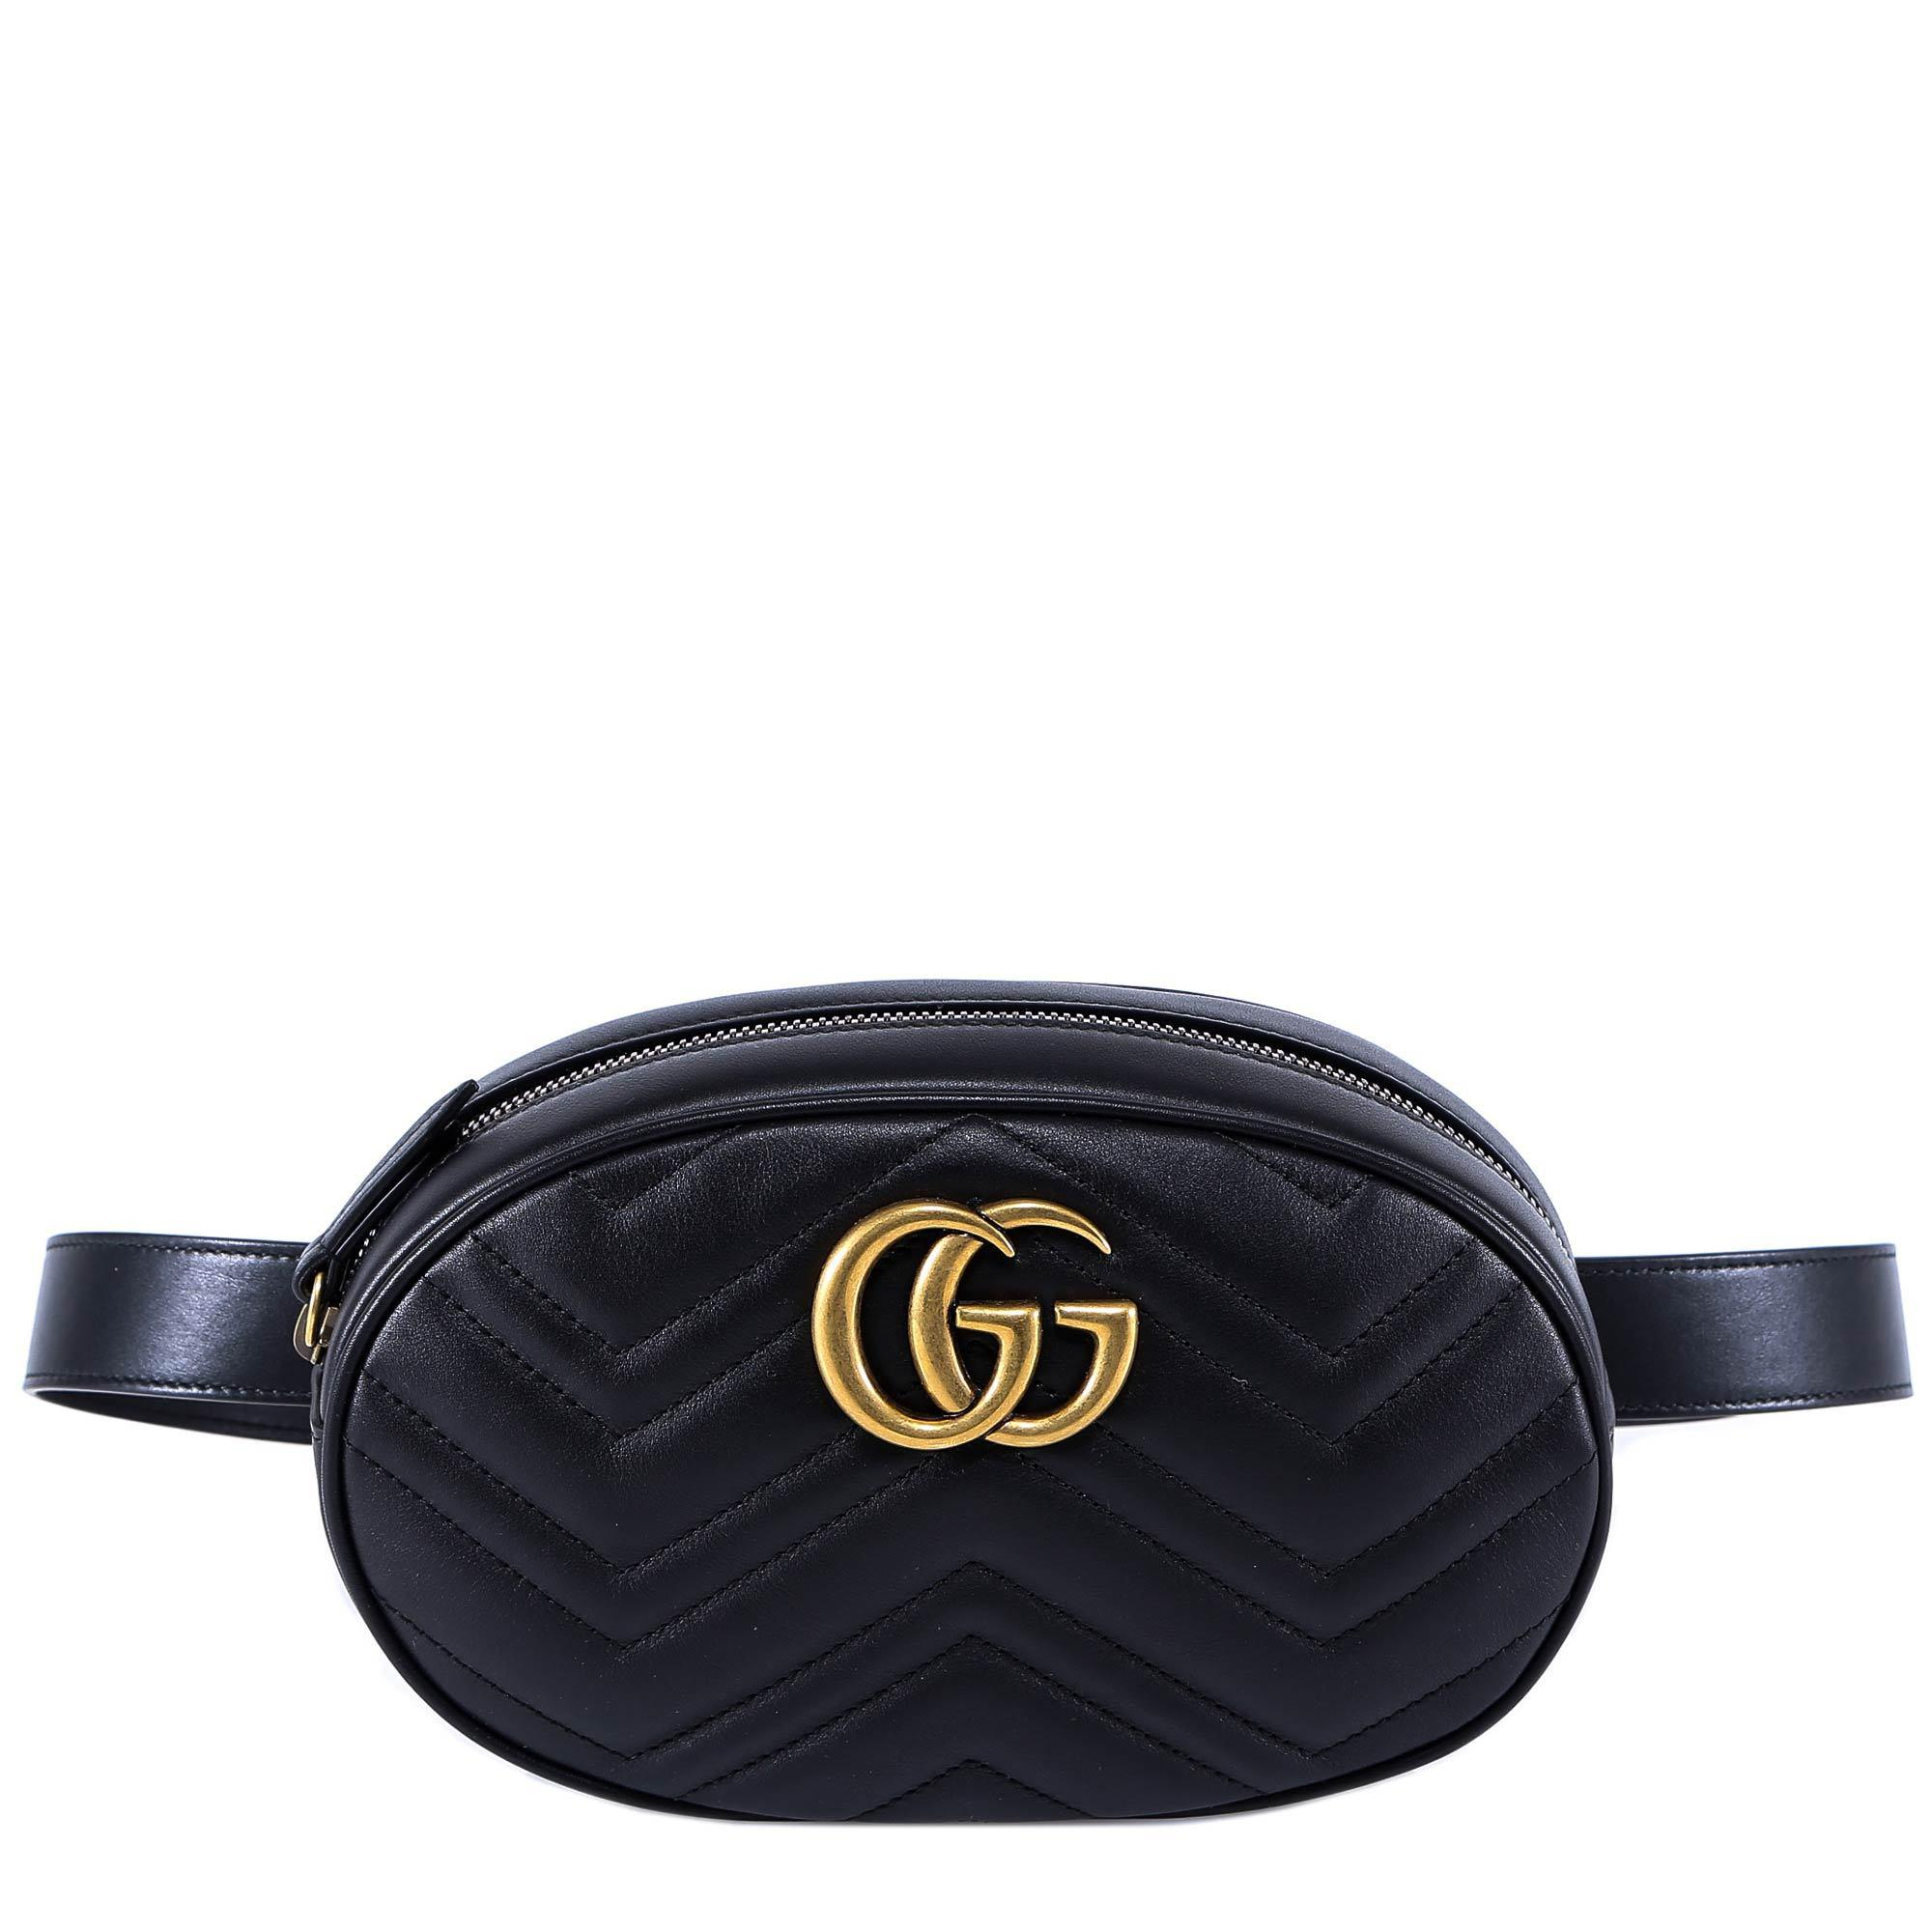 adec46d66a45 Gucci GG Marmont Belt Bag in Black - Lyst